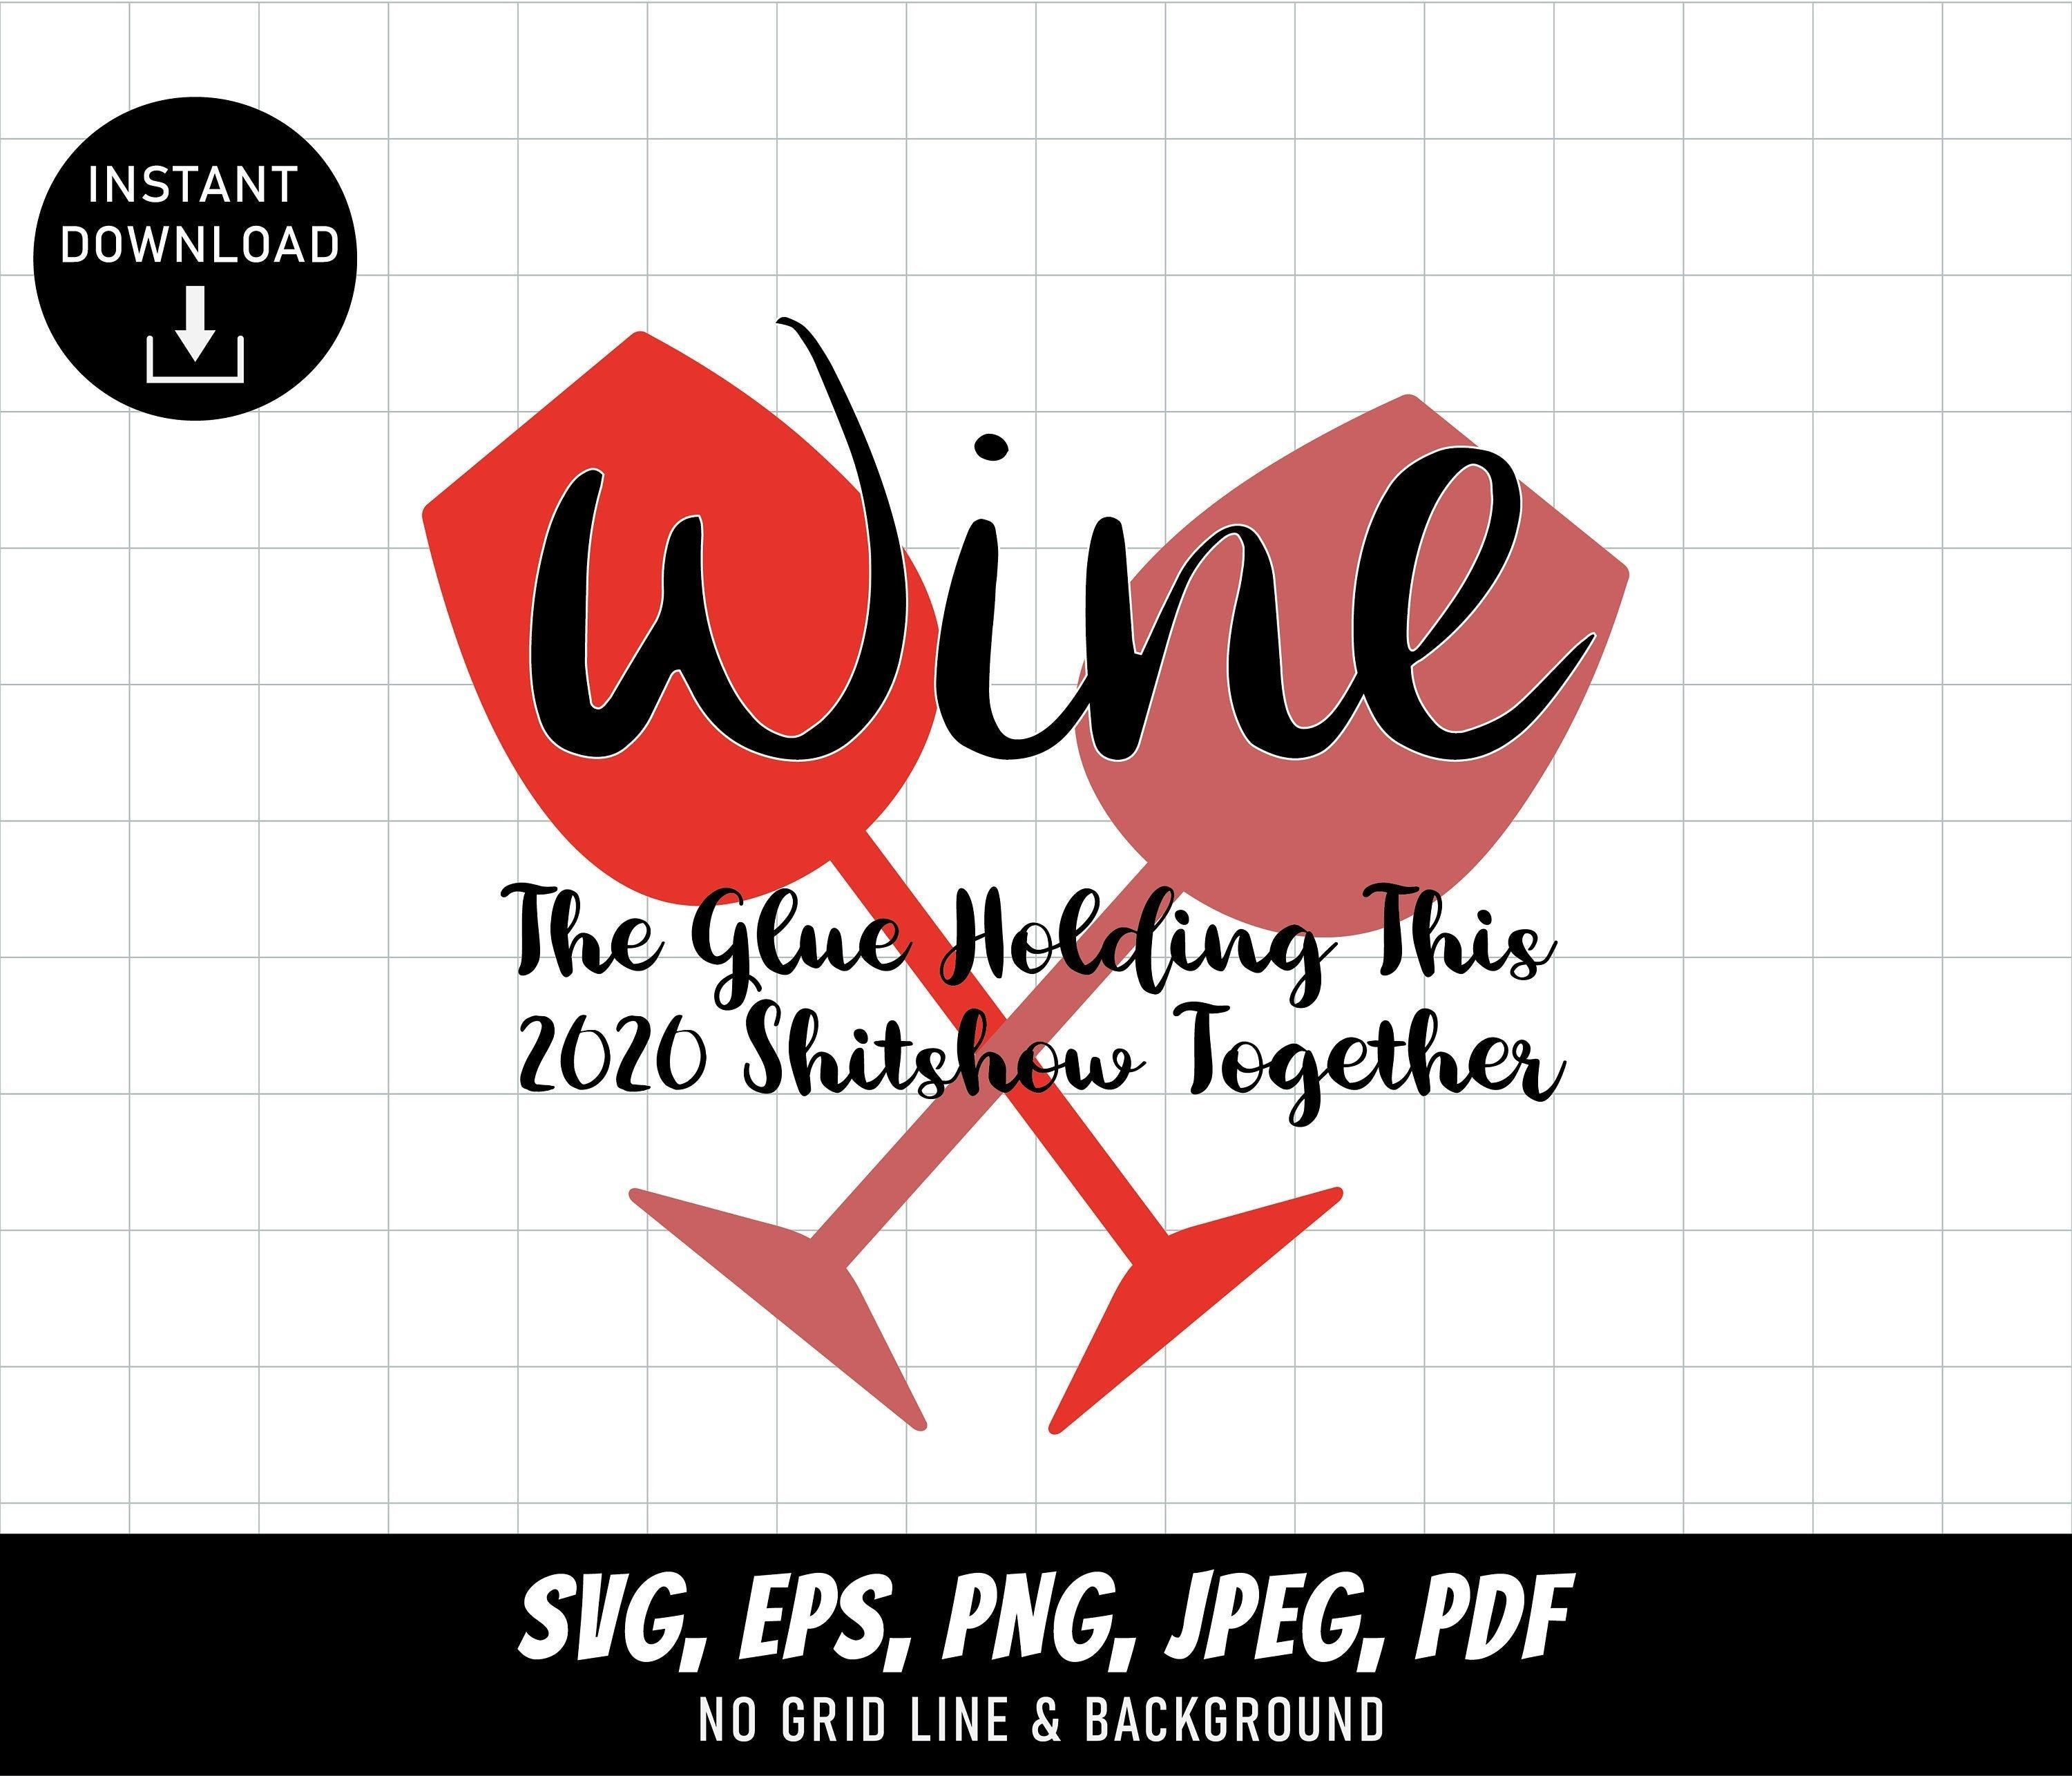 Wine The Glue Holding This 2020 Shitshow Together Instant Svg Etsy In 2020 Digital Graphic Design Etsy Help Hold On